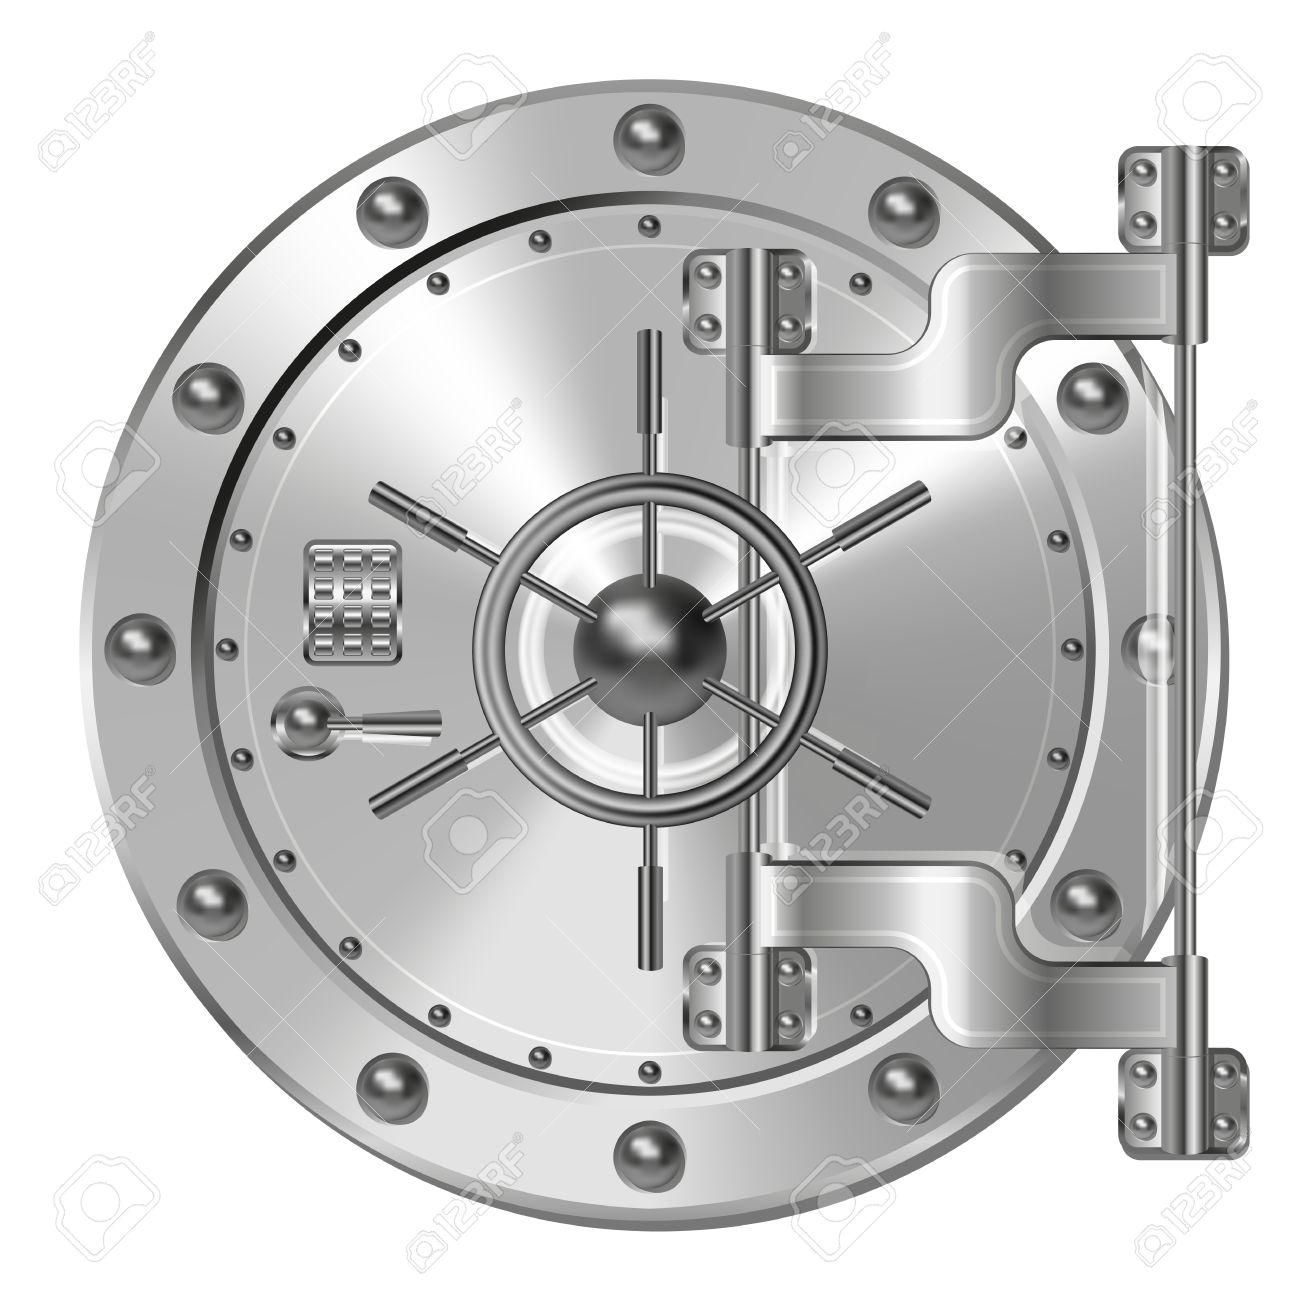 Bank vault door clipart picture freeuse Vault 111 clipart - ClipartFest picture freeuse